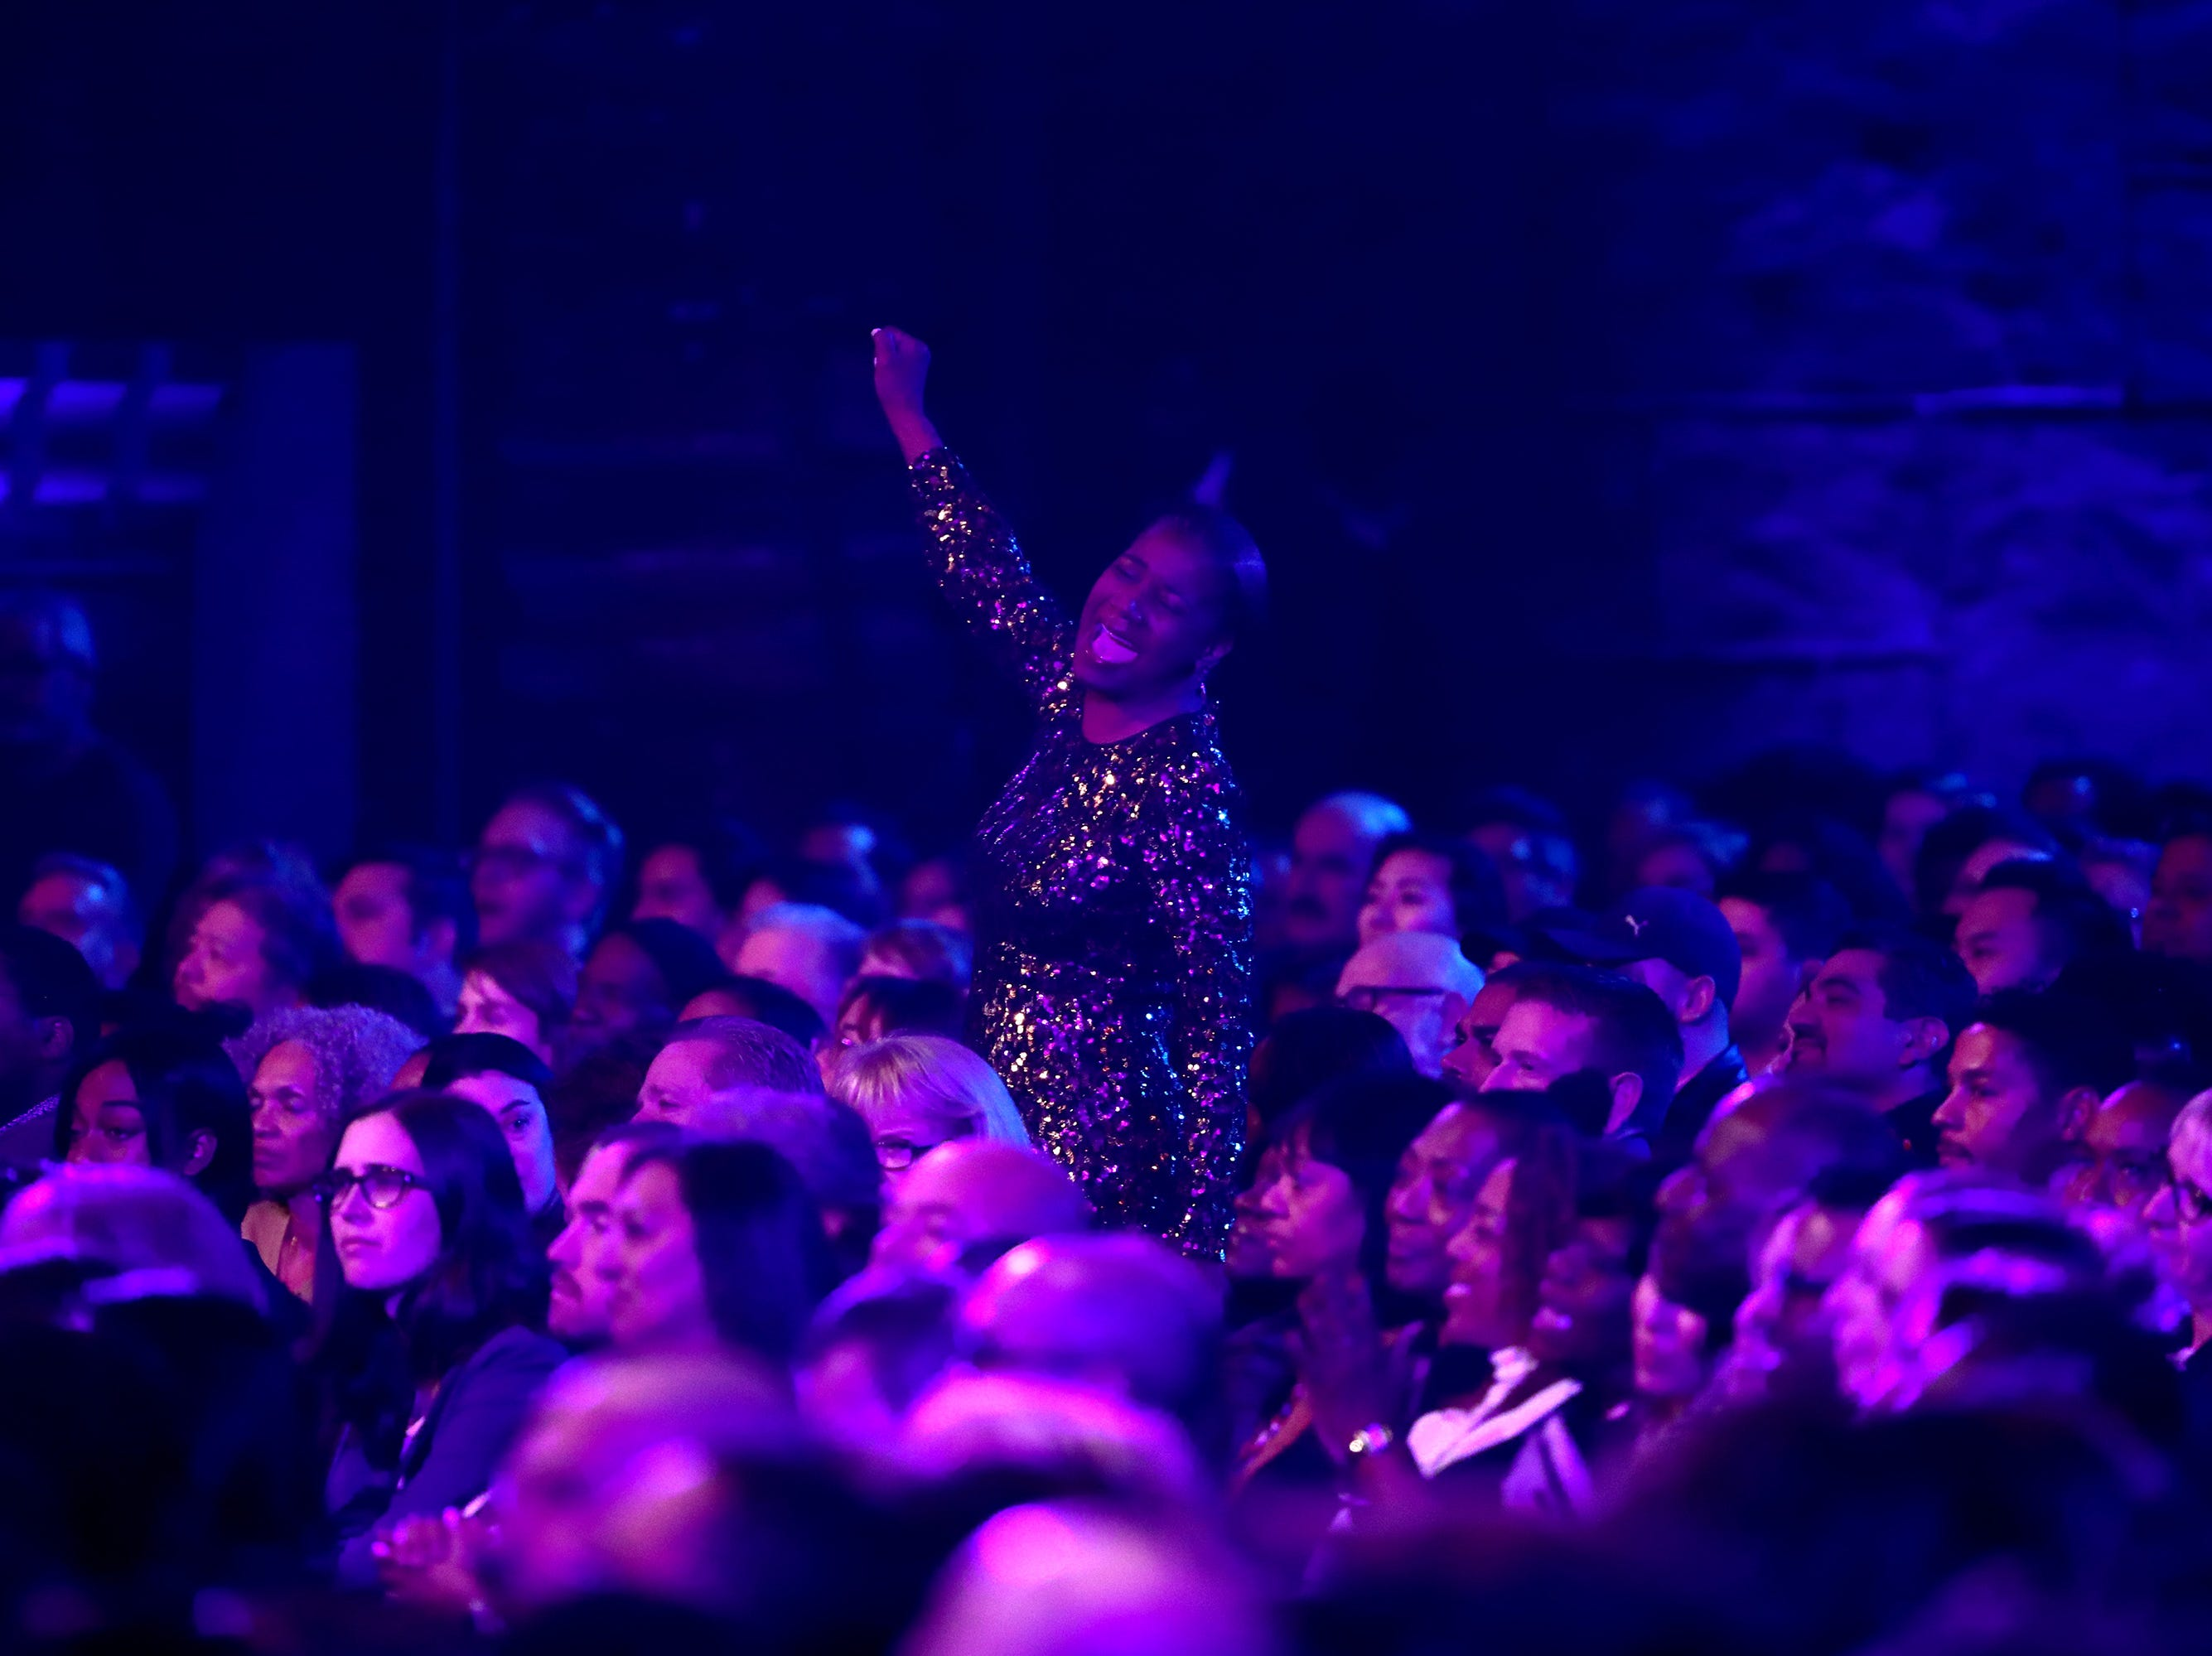 """LOS ANGELES, CA - JANUARY 13:  A general view of the audience is seen at """"Aretha! A Grammy Celebration For the Queen Of Soul"""" at the Shrine Auditorium on Jan. 13, 2019, in Los Angeles, Calif."""